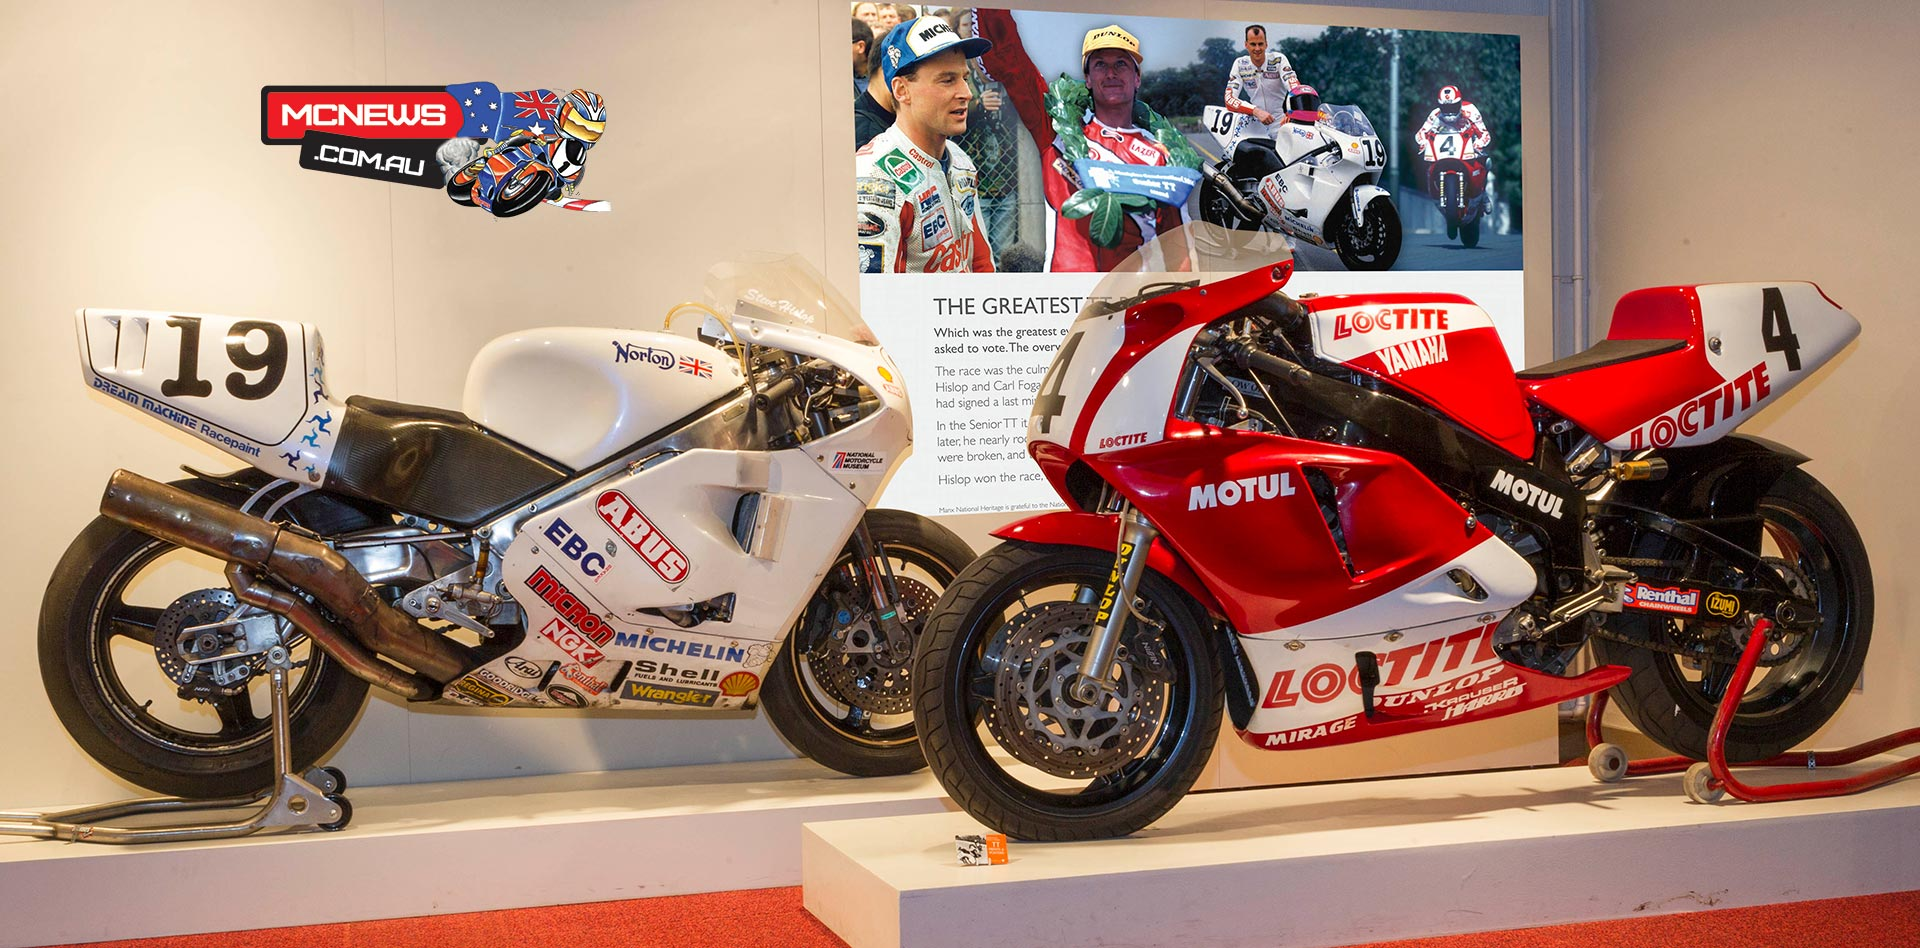 Carl Fogarty's Loctite Yamaha 0W01 and Norton NRS588 that Steve Hislop raced in the 1992 Senior TT